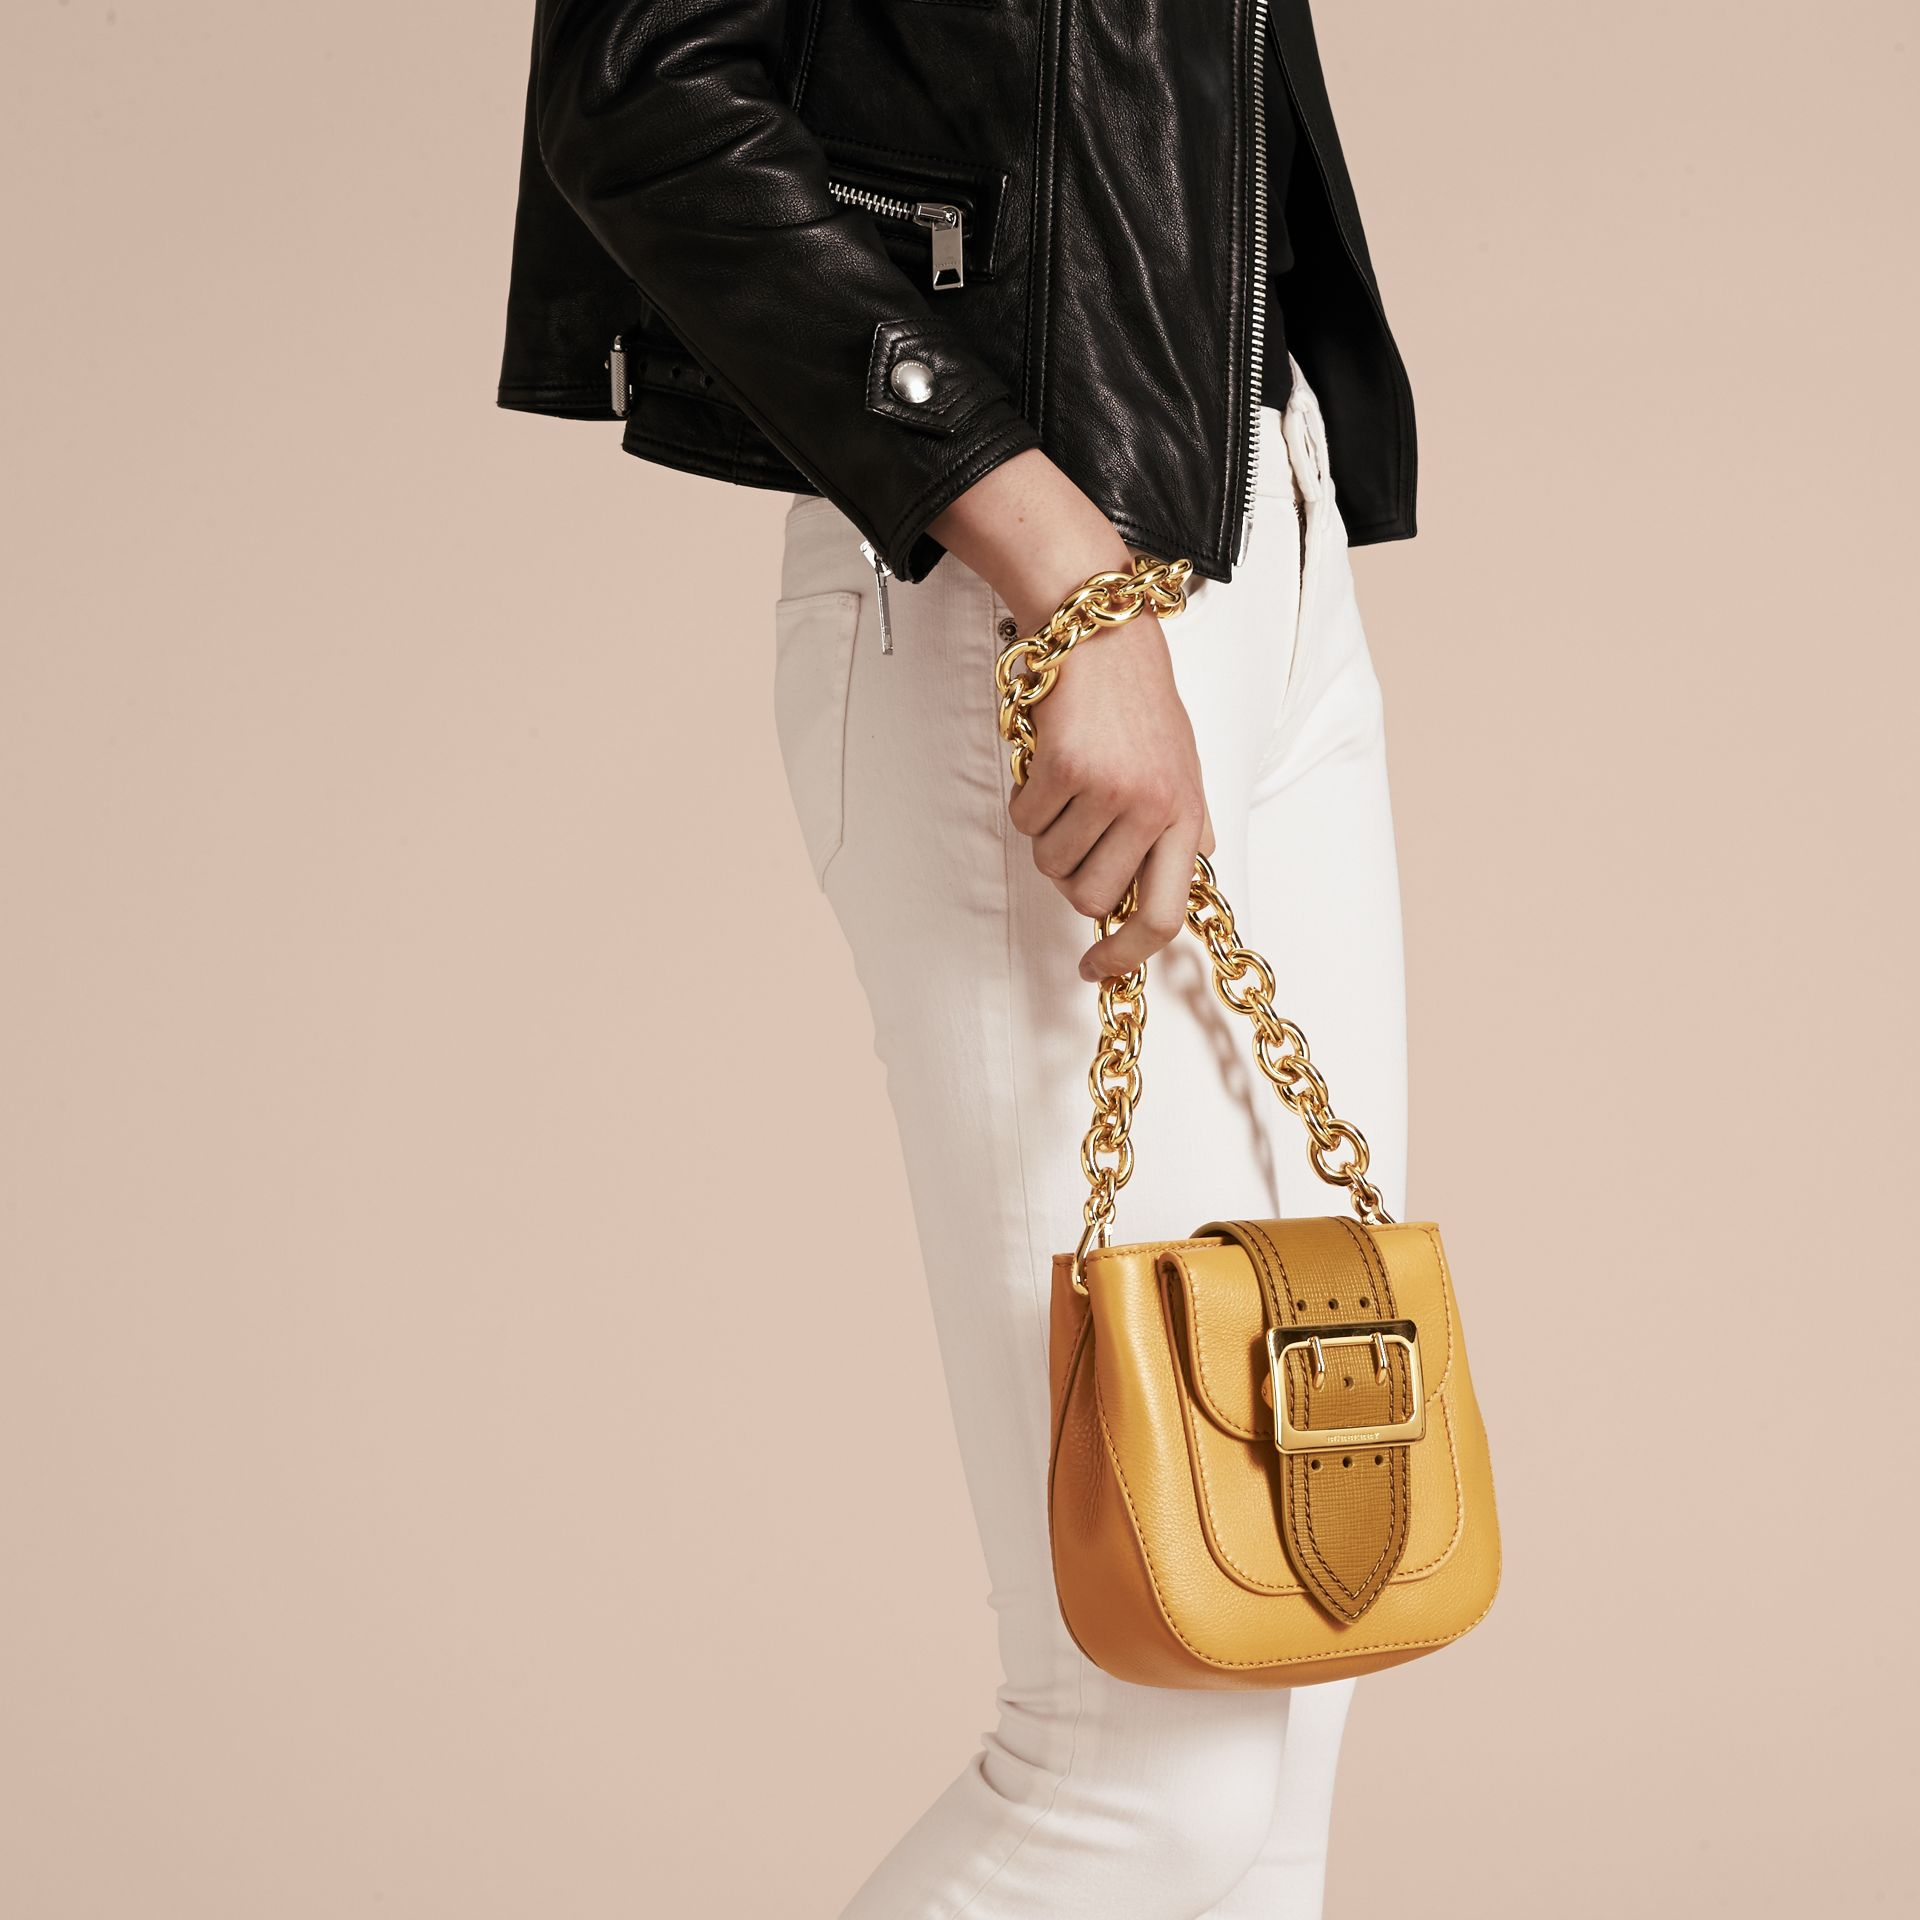 Ochre yellow The Small Square Buckle Bag in Leather - gallery image 4